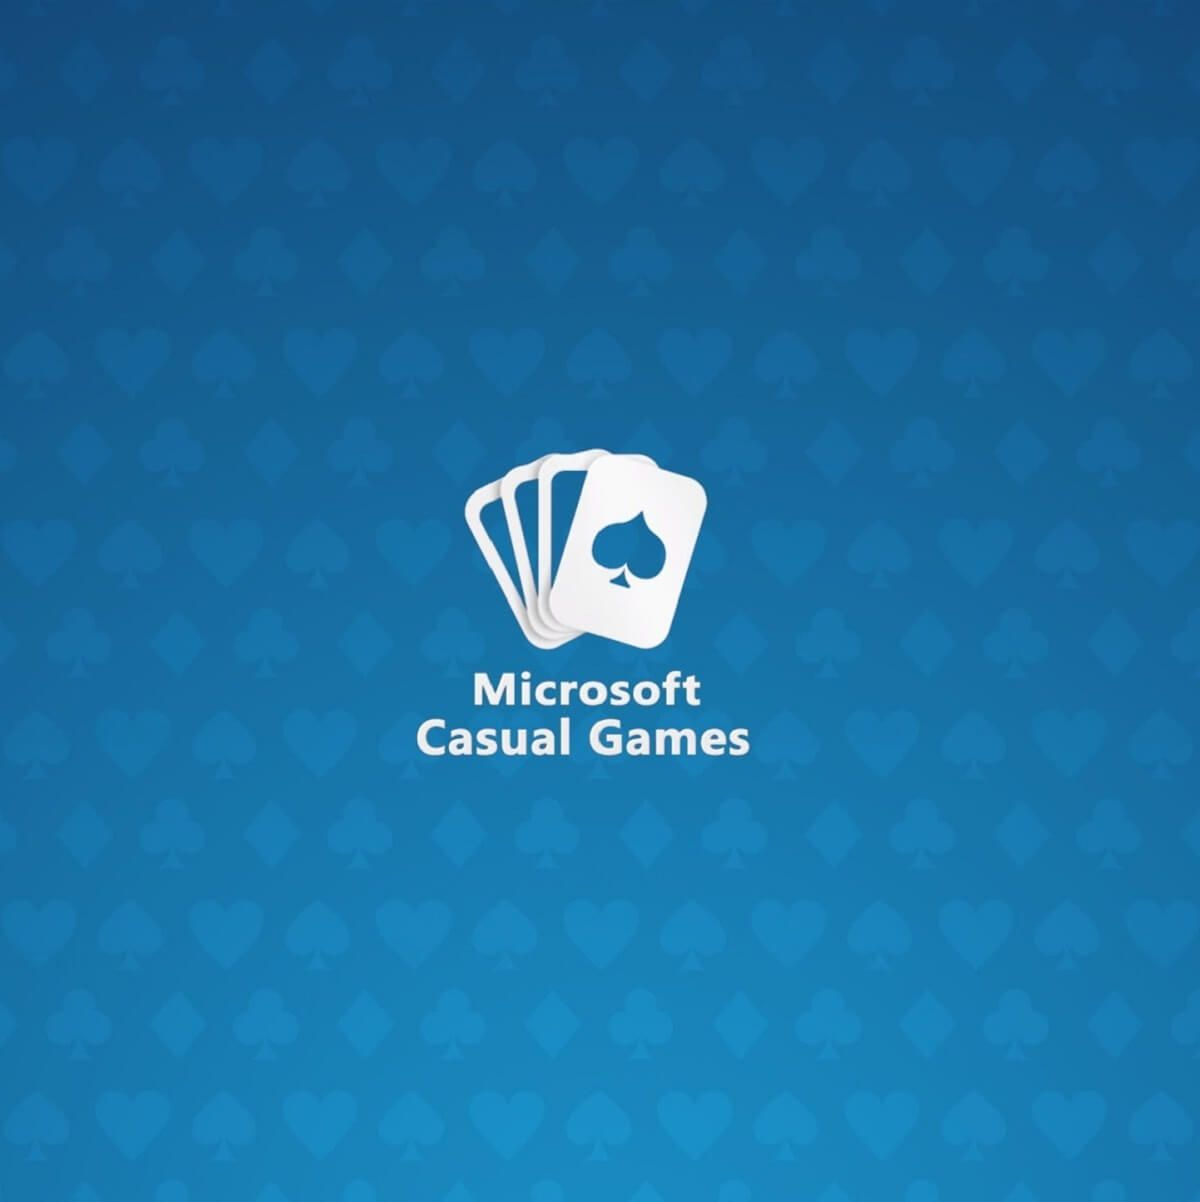 Microsoft Jigsaw puzzle collection is one of the most